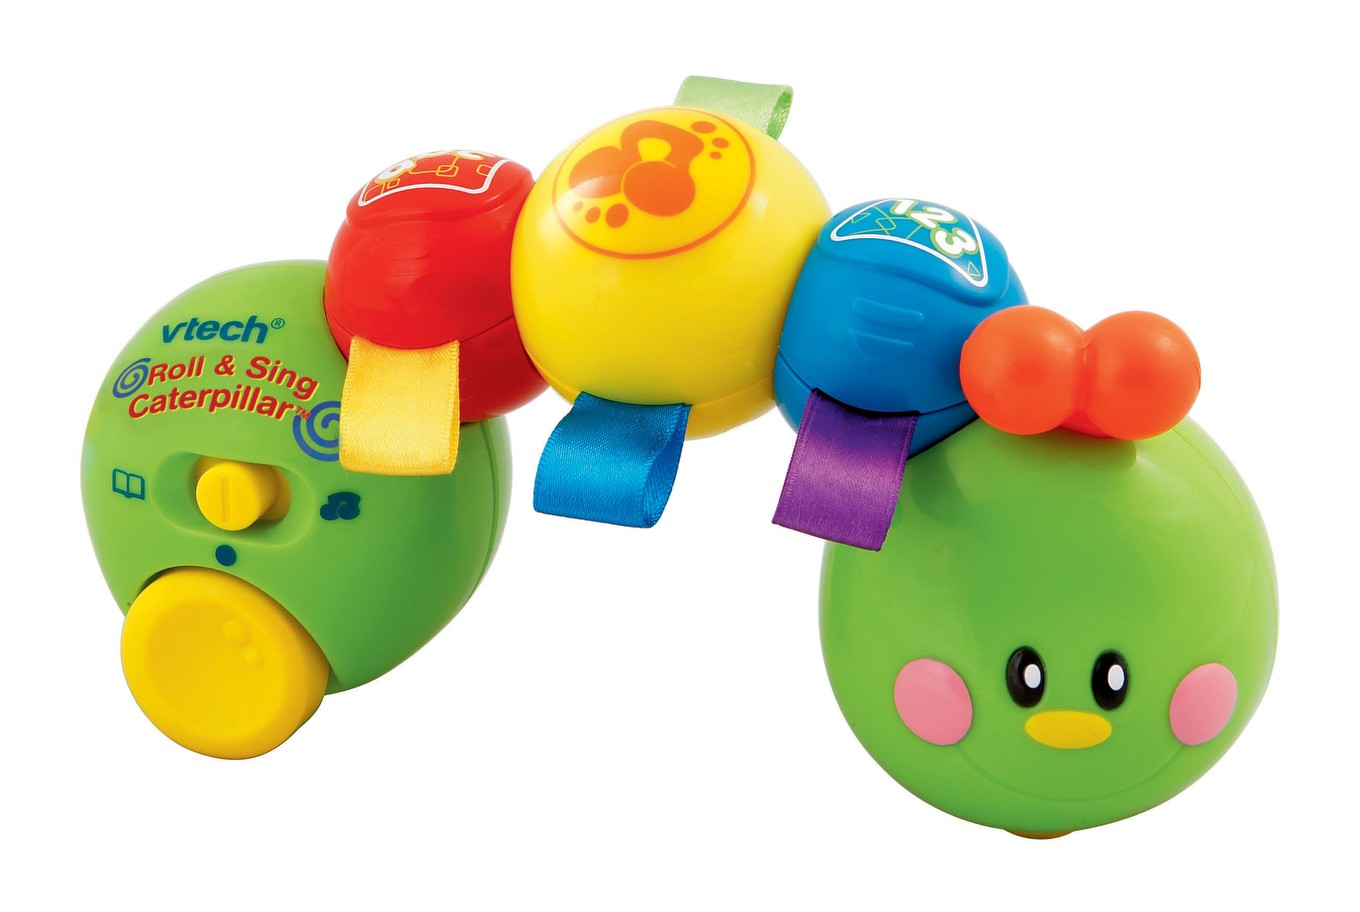 Roll & Sing Caterpillar | Infant Learning Toy | Vtechk